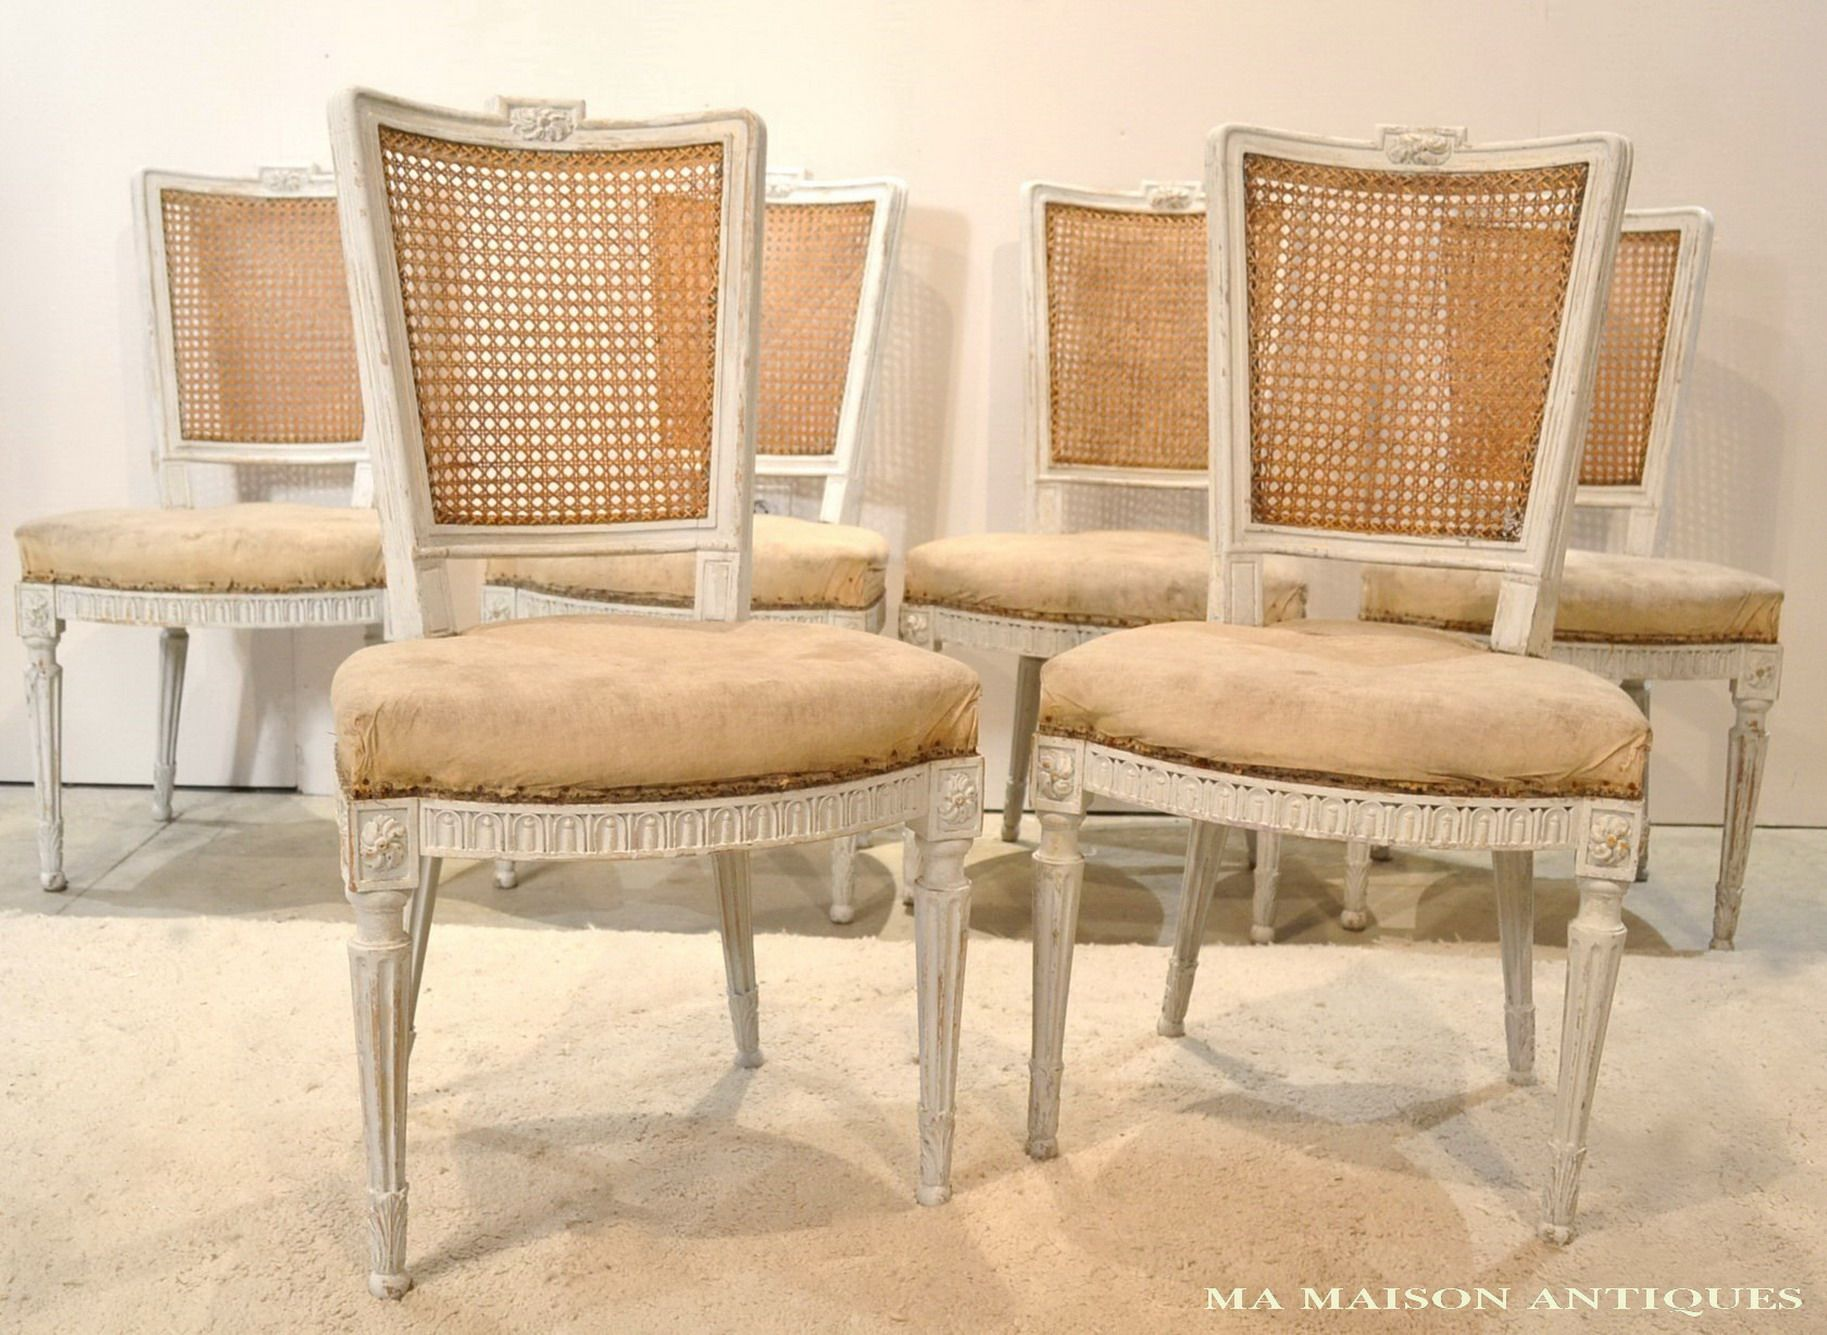 Set of 6 Louis XVI Style Dining chairs, French, Circa 1890